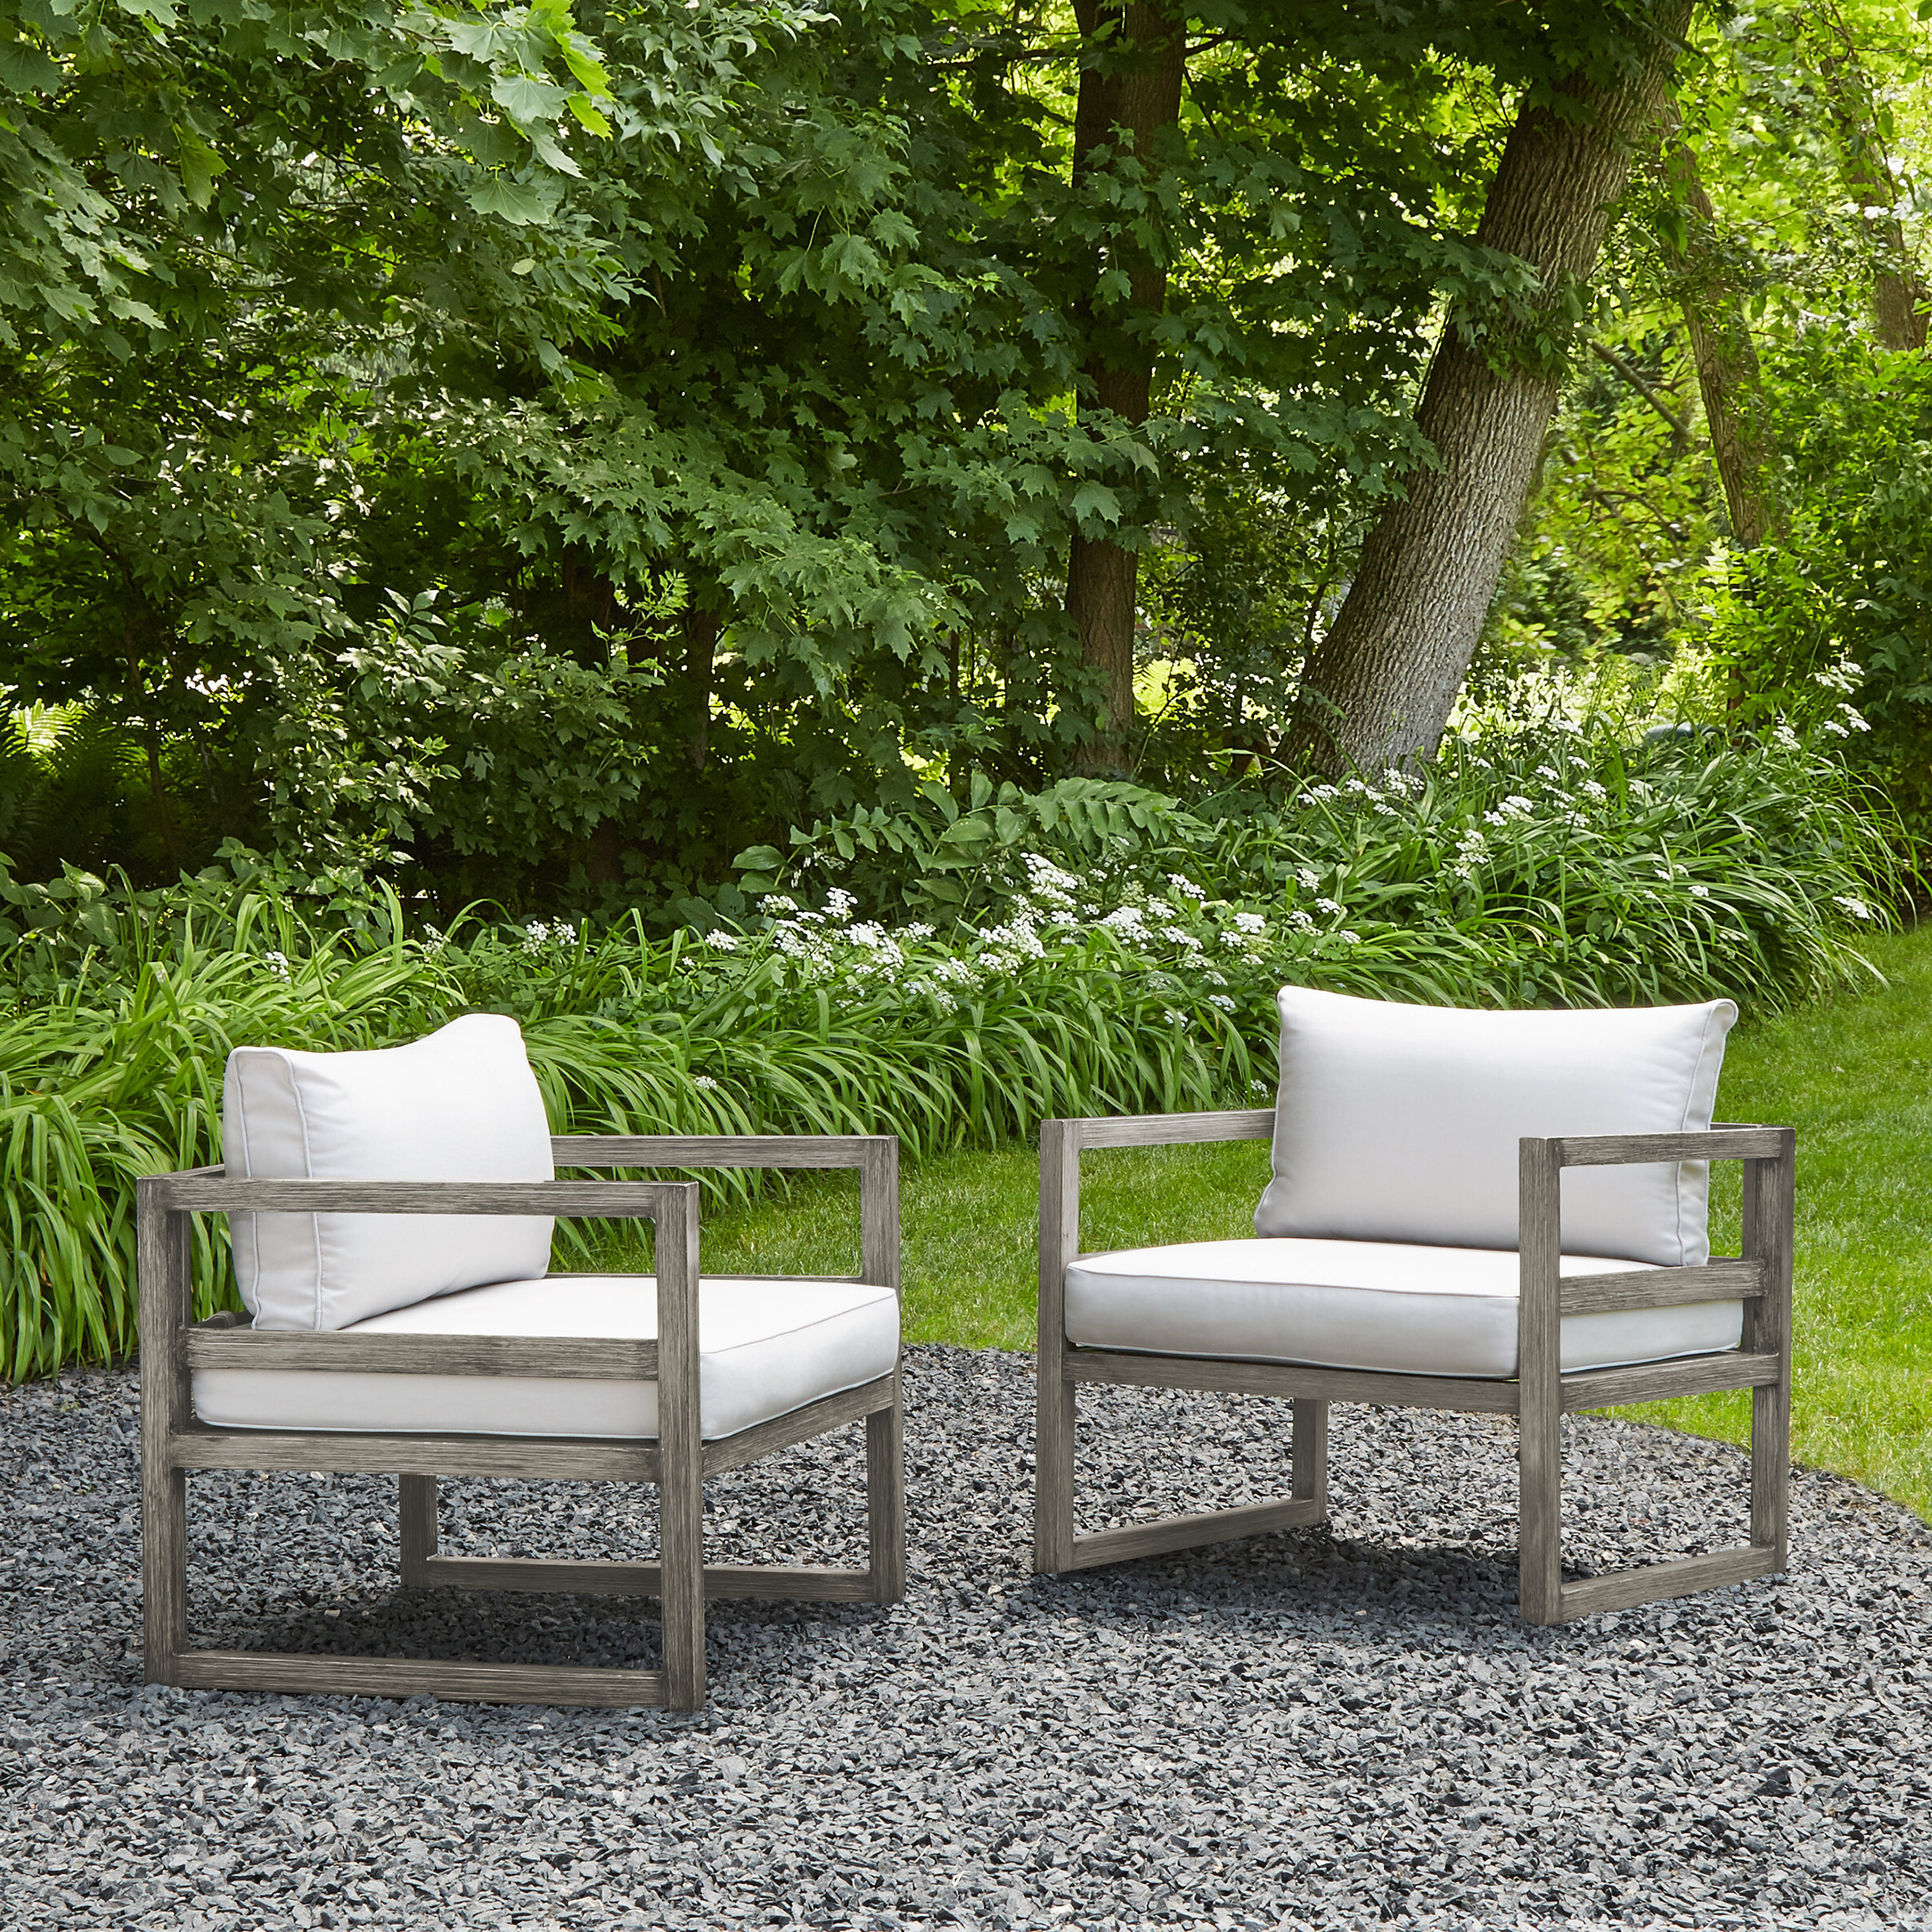 Most Recently Released Monaco Patio Chair With Cushion Pertaining To Baca Patio Sofas With Cushions (Gallery 22 of 25)